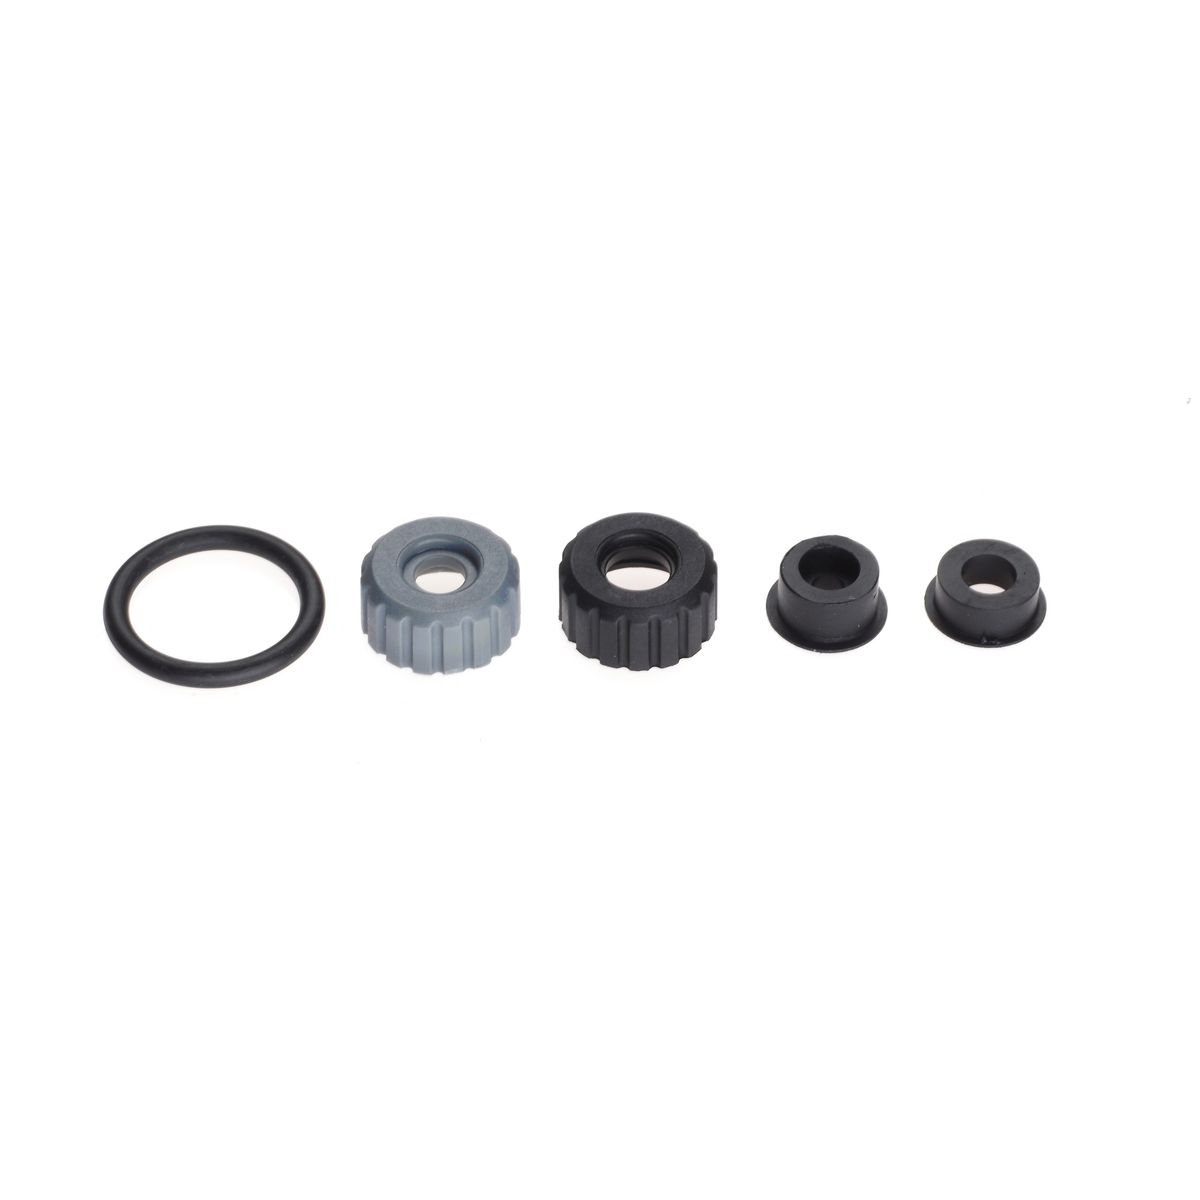 Rebuild Kit for JoeBlow Elite and Sport II